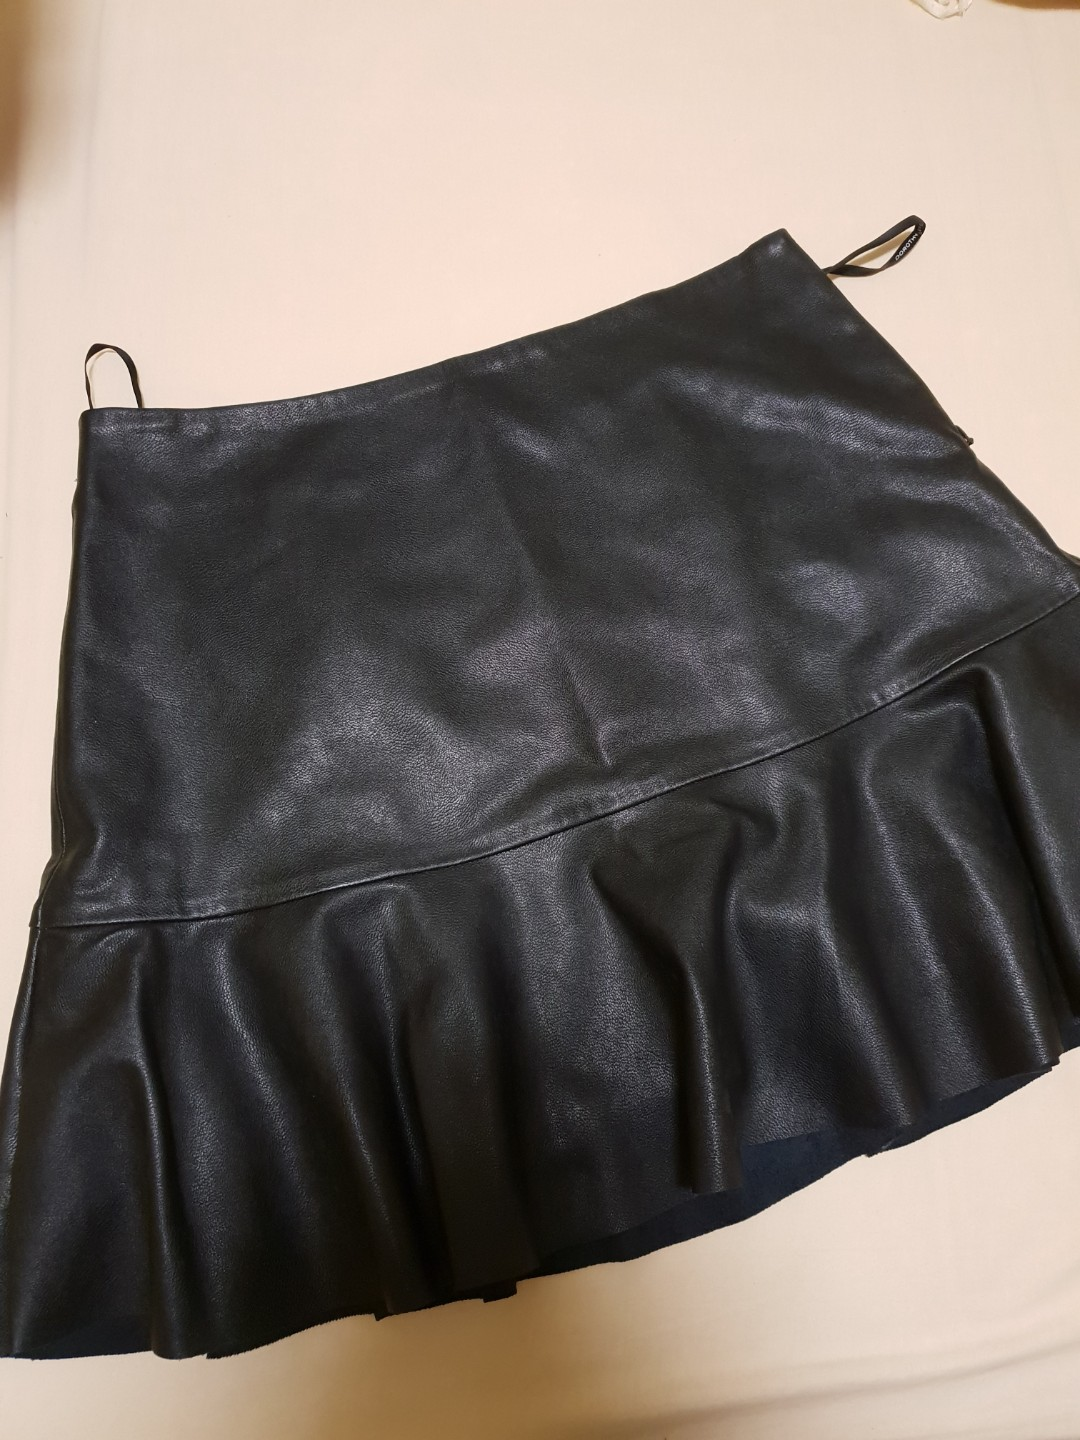 80d734cbeb Dorothy Perkins PU leather skirt, Women's Fashion, Clothes, Dresses ...